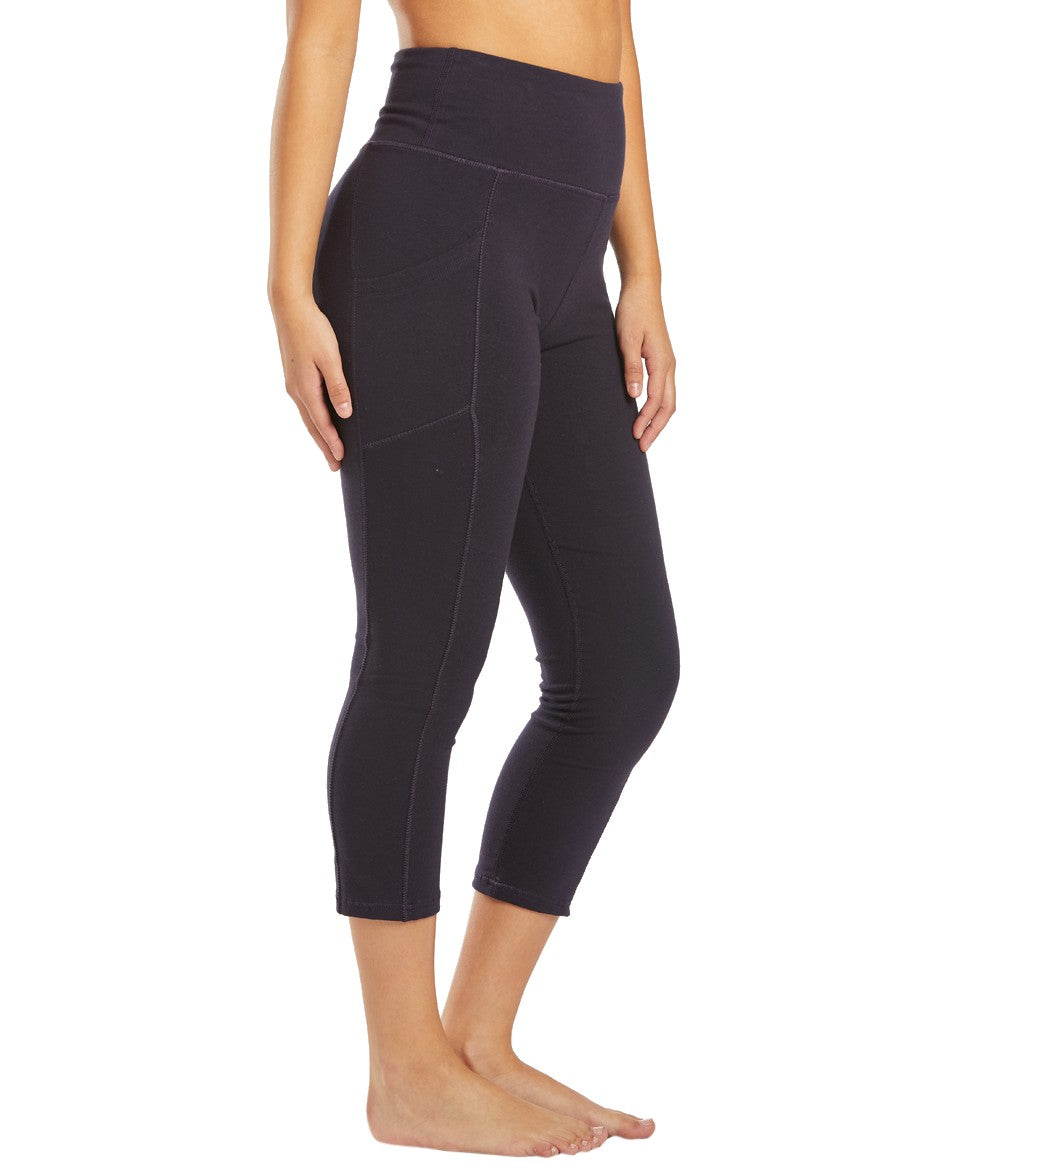 Marika Bailee High Rise Tummy Control Yoga Capri Pants with Pockets - Midnight Blue Cotton